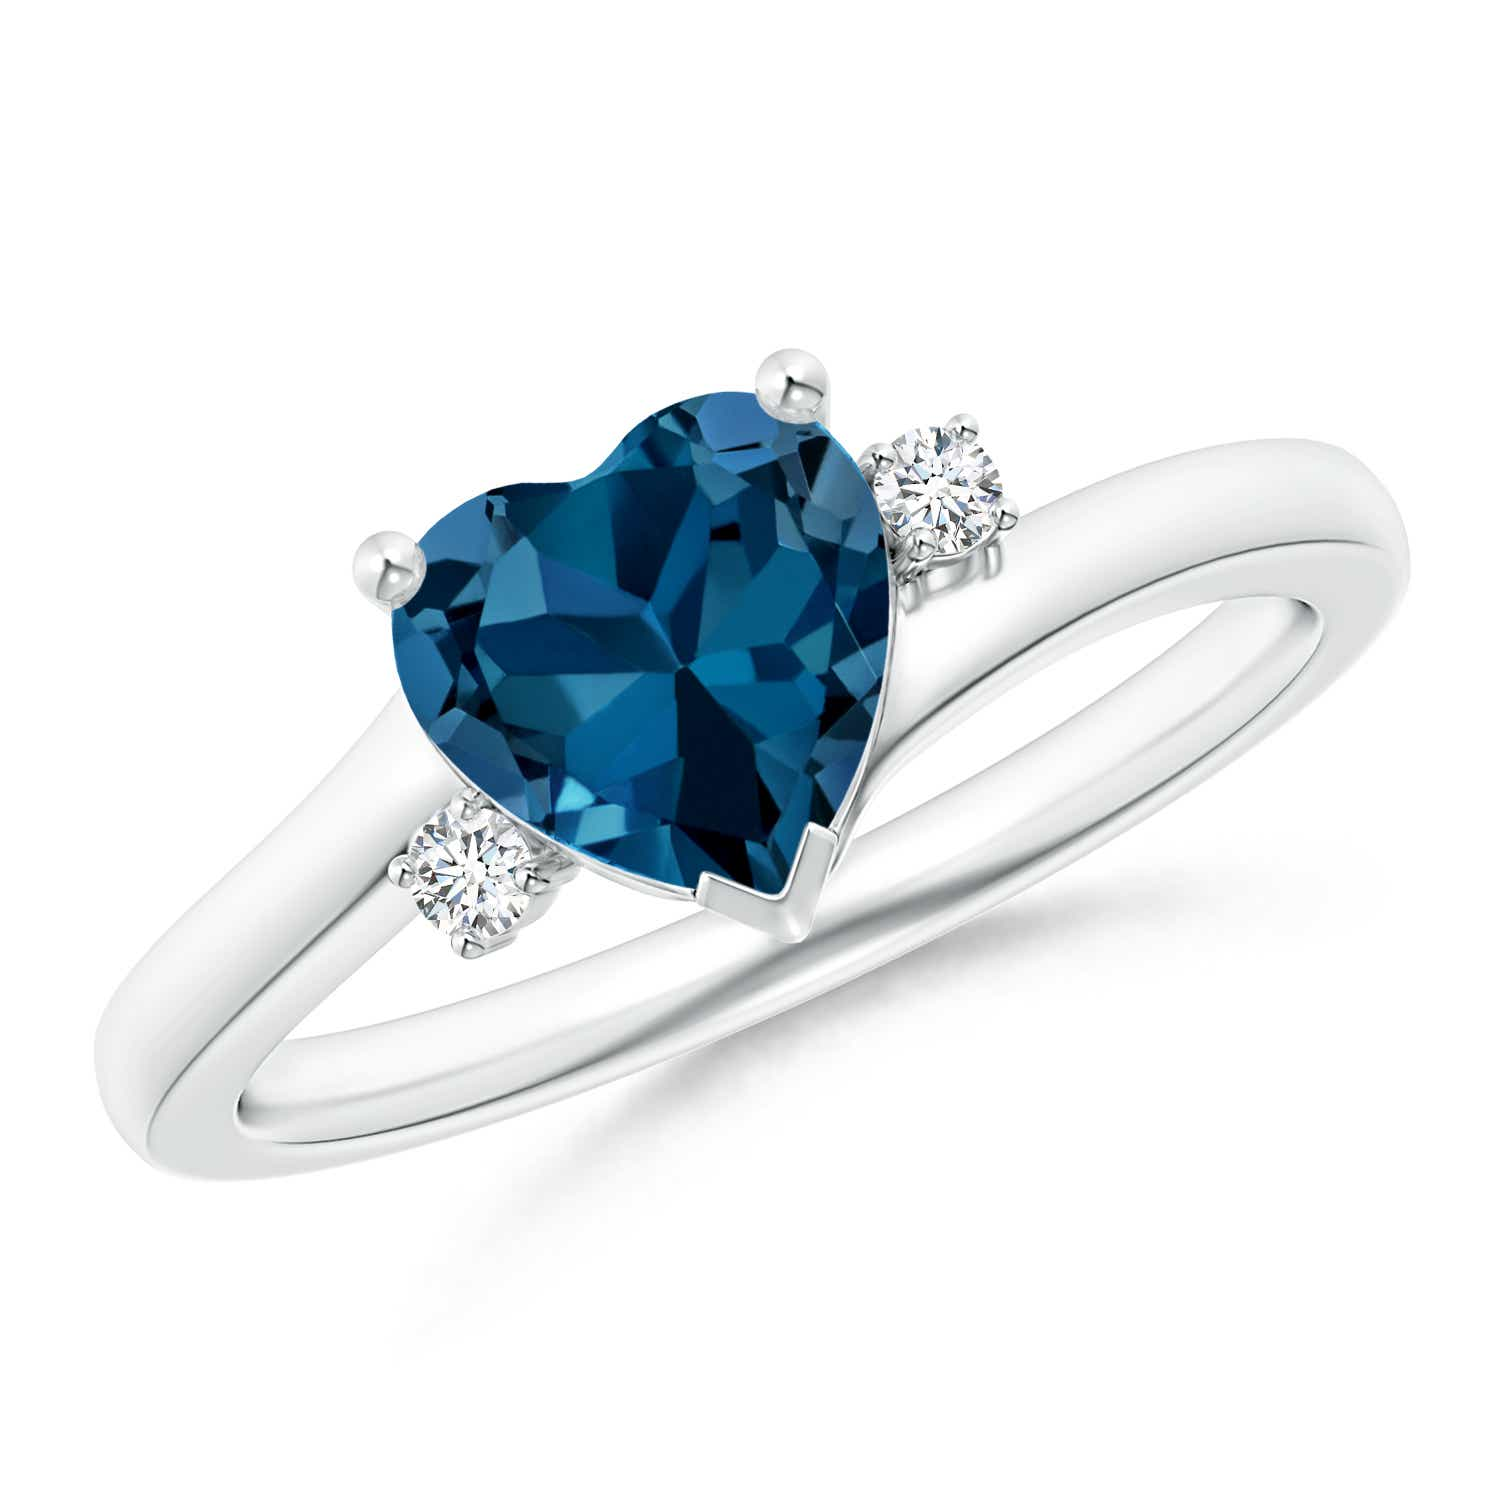 Solitaire Heart London Blue Topaz Bypass Ring with Diamonds - Angara.com